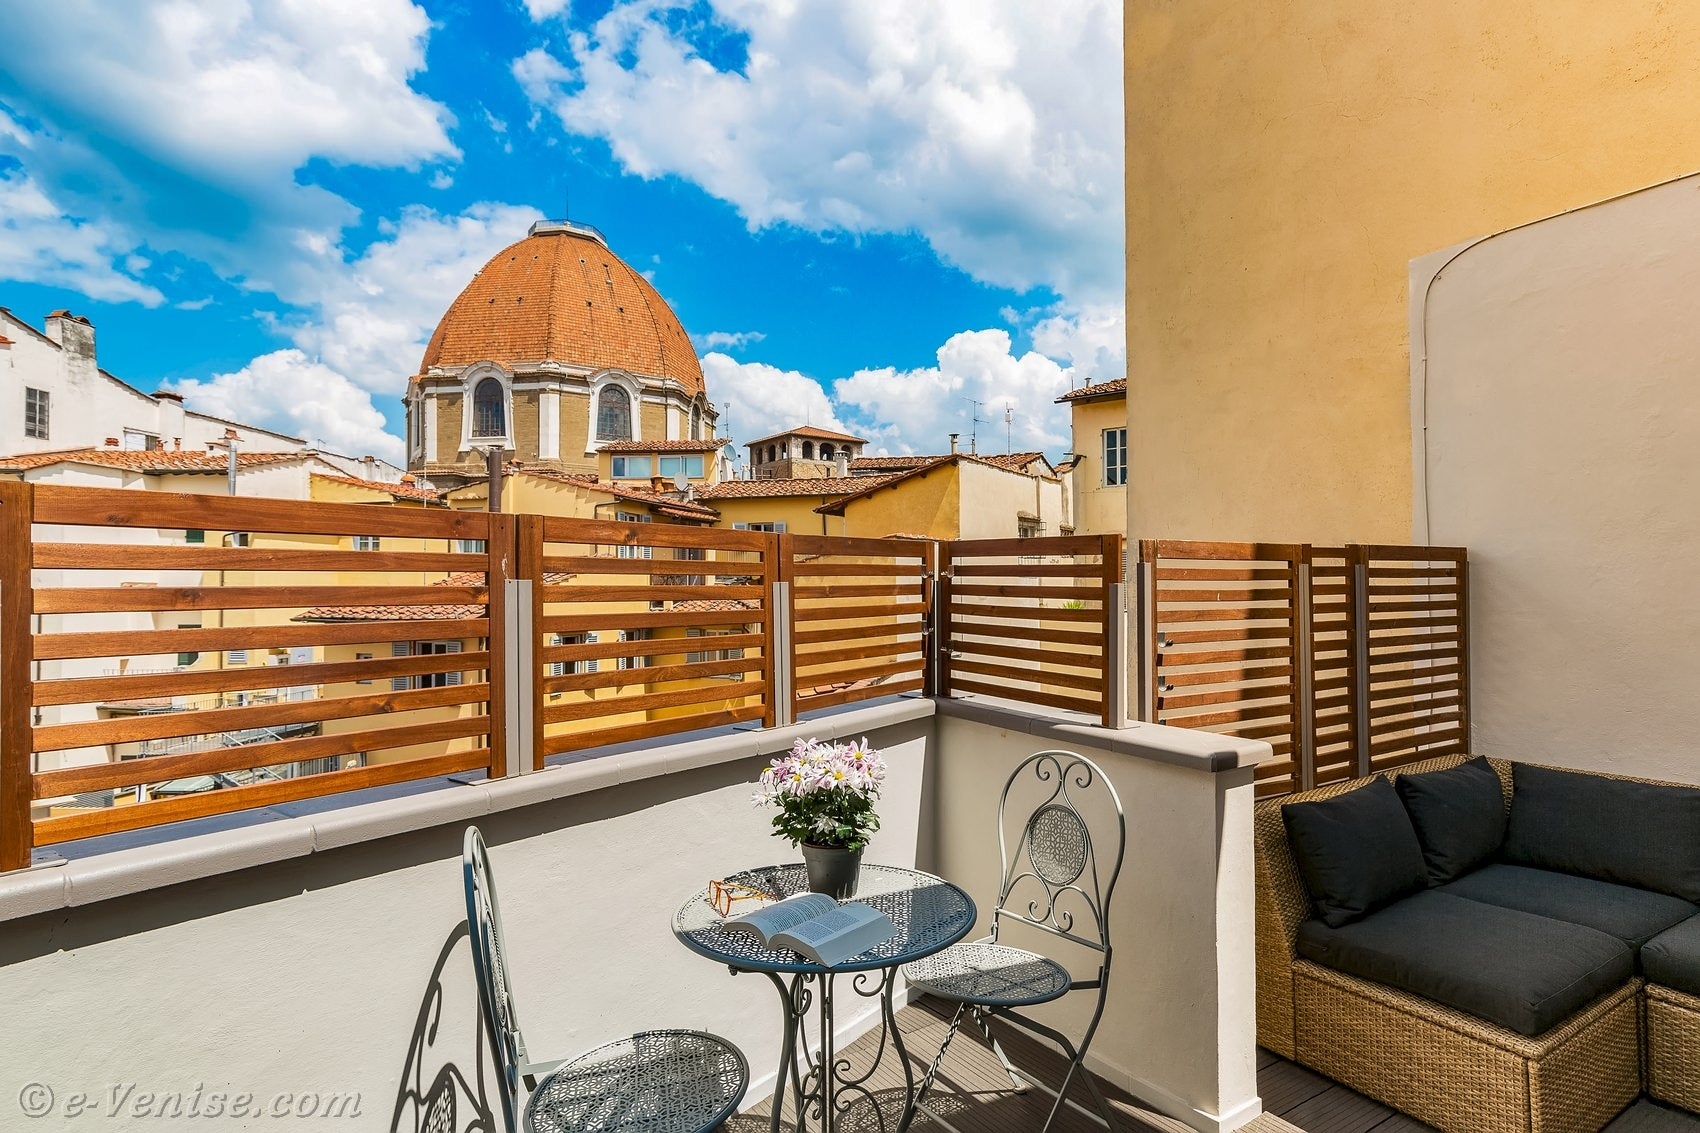 Toit Terrasse Florence Location Appartement Florence 2 Personnes Lorenzo Novella Terrasse